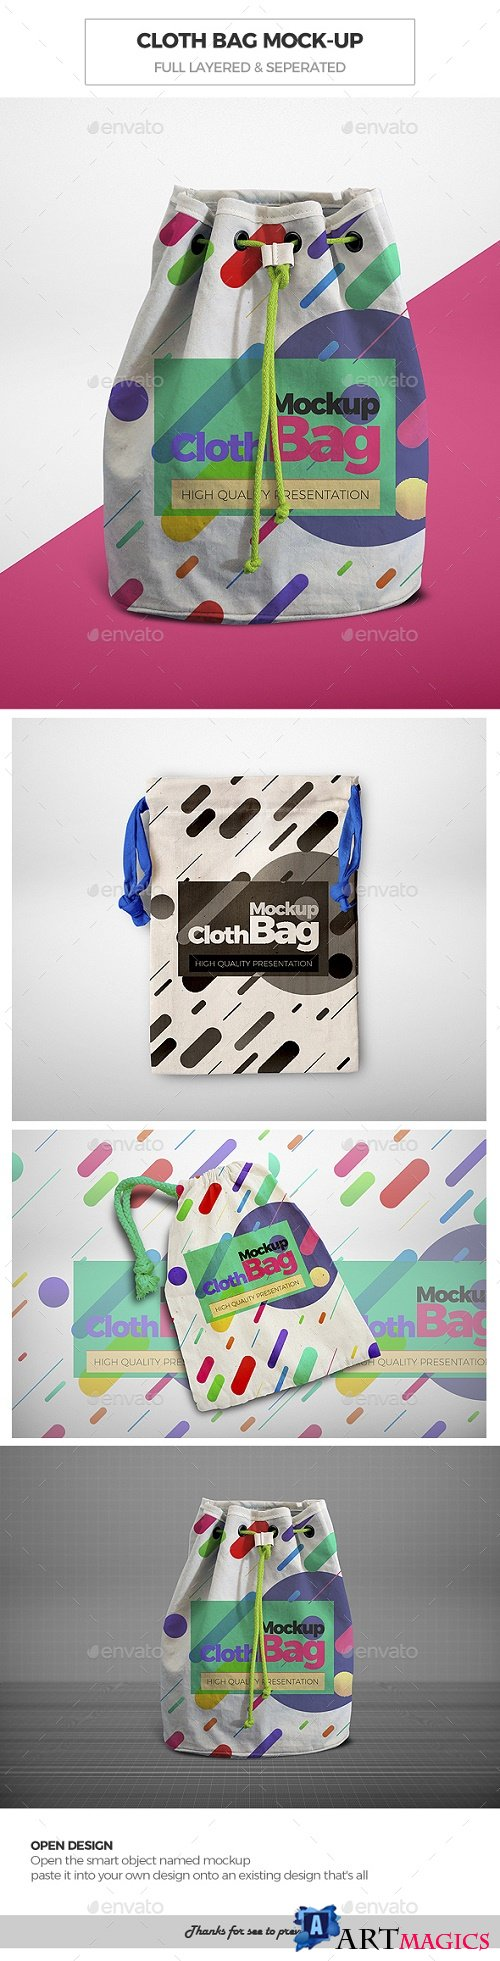 Cloth Bag Mock-Ups 21674387